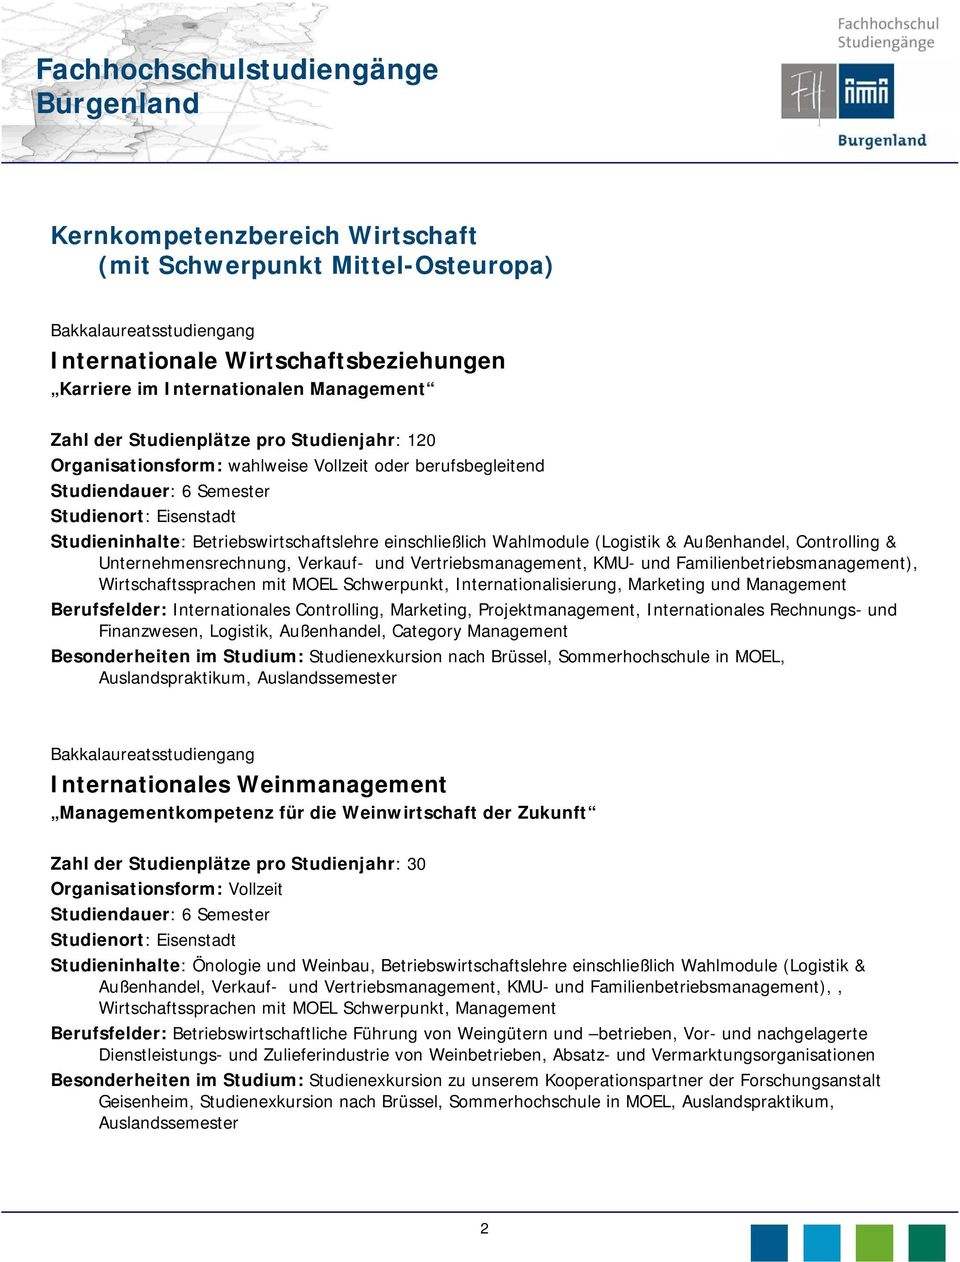 und Vertriebsmanagement, KMU- und Familienbetriebsmanagement), Wirtschaftssprachen mit MOEL Schwerpunkt, Internationalisierung, Marketing und Management Berufsfelder: Internationales Controlling,